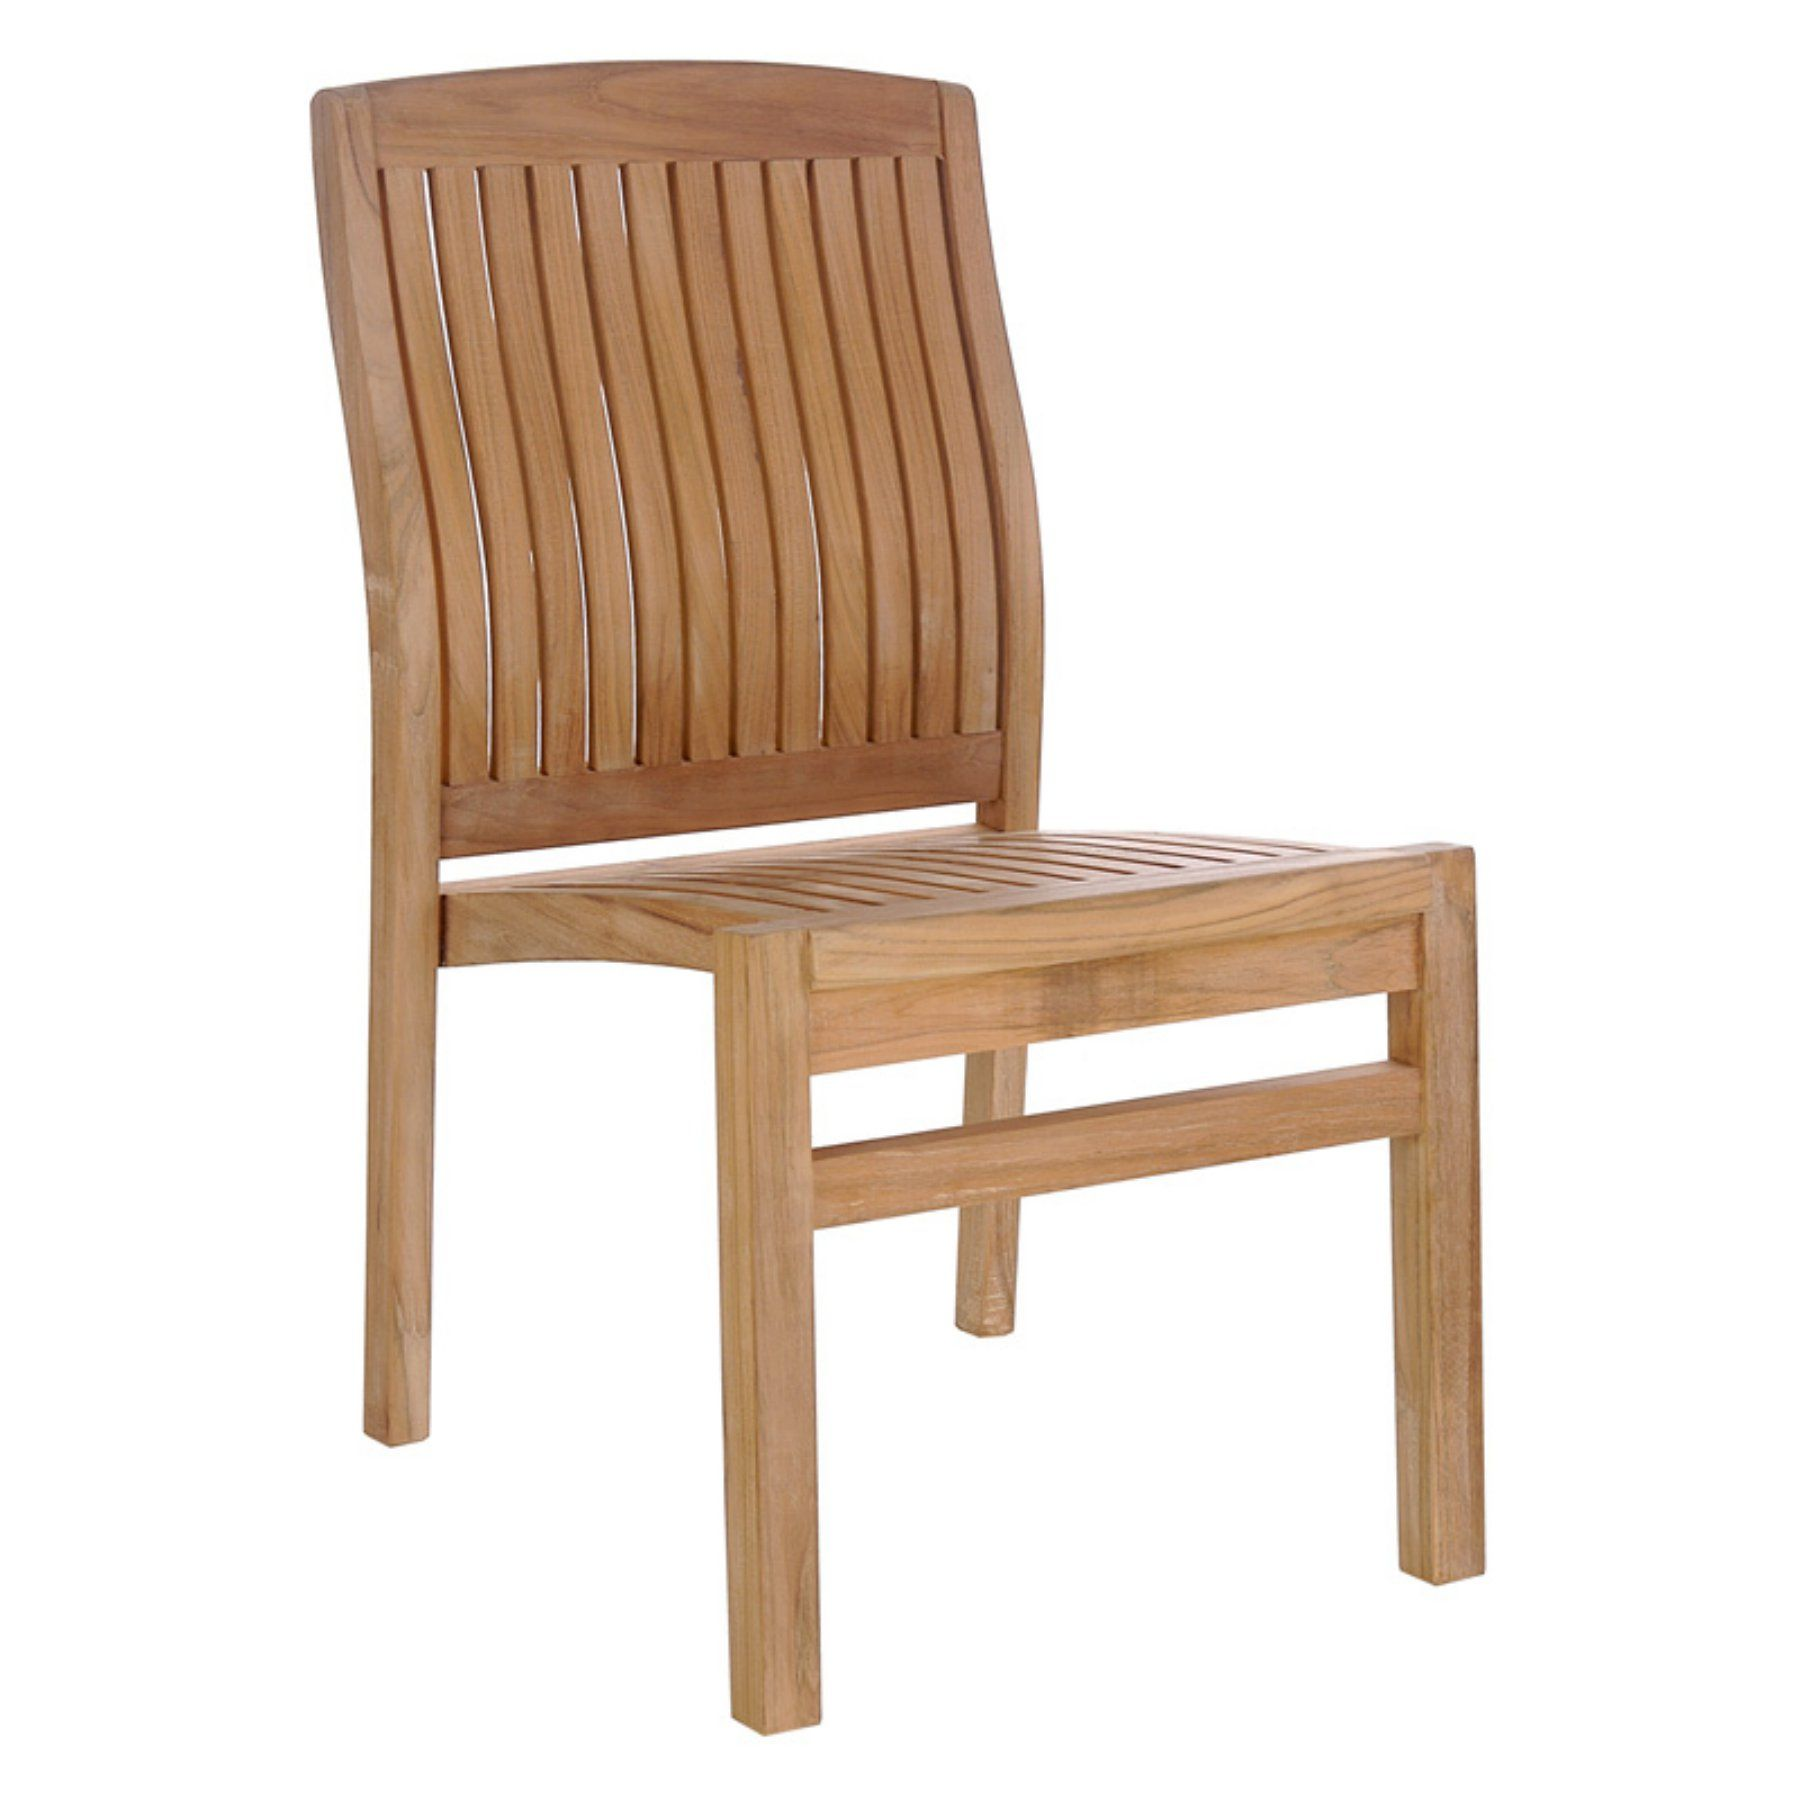 teak outdoor dining chairs. Outdoor Chic Teak Belize Patio Dining Side Chair - HJ002DC Chairs G